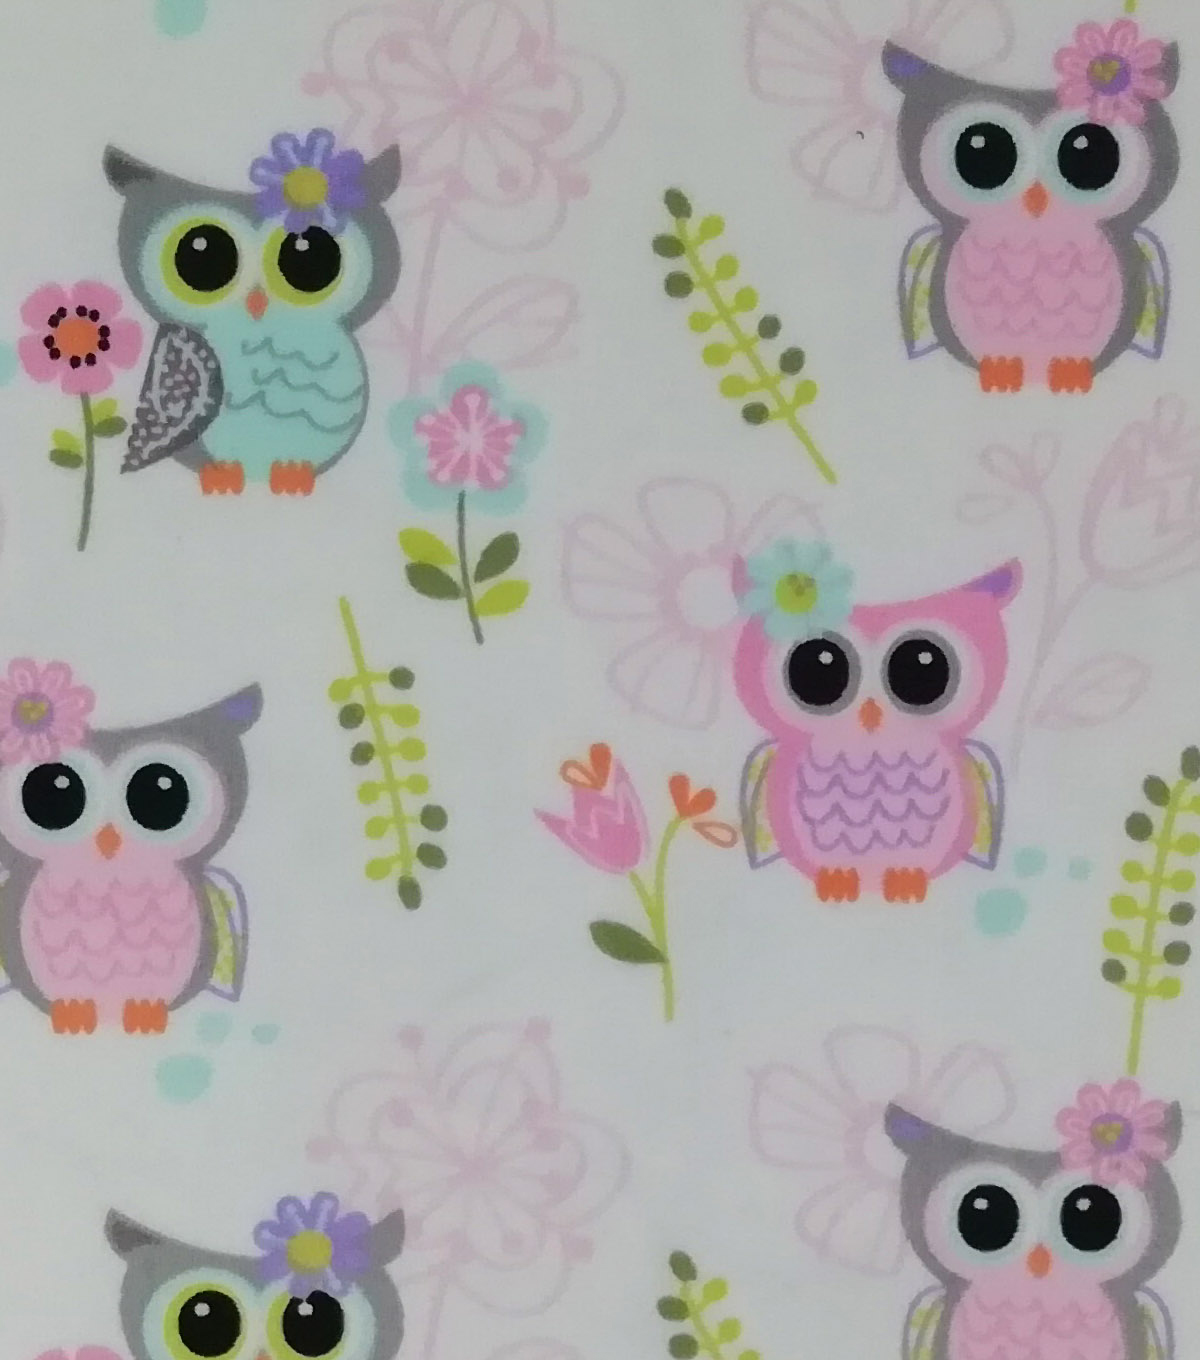 Soft & Comfy Fleece Fabric-Bright Eyes Owls